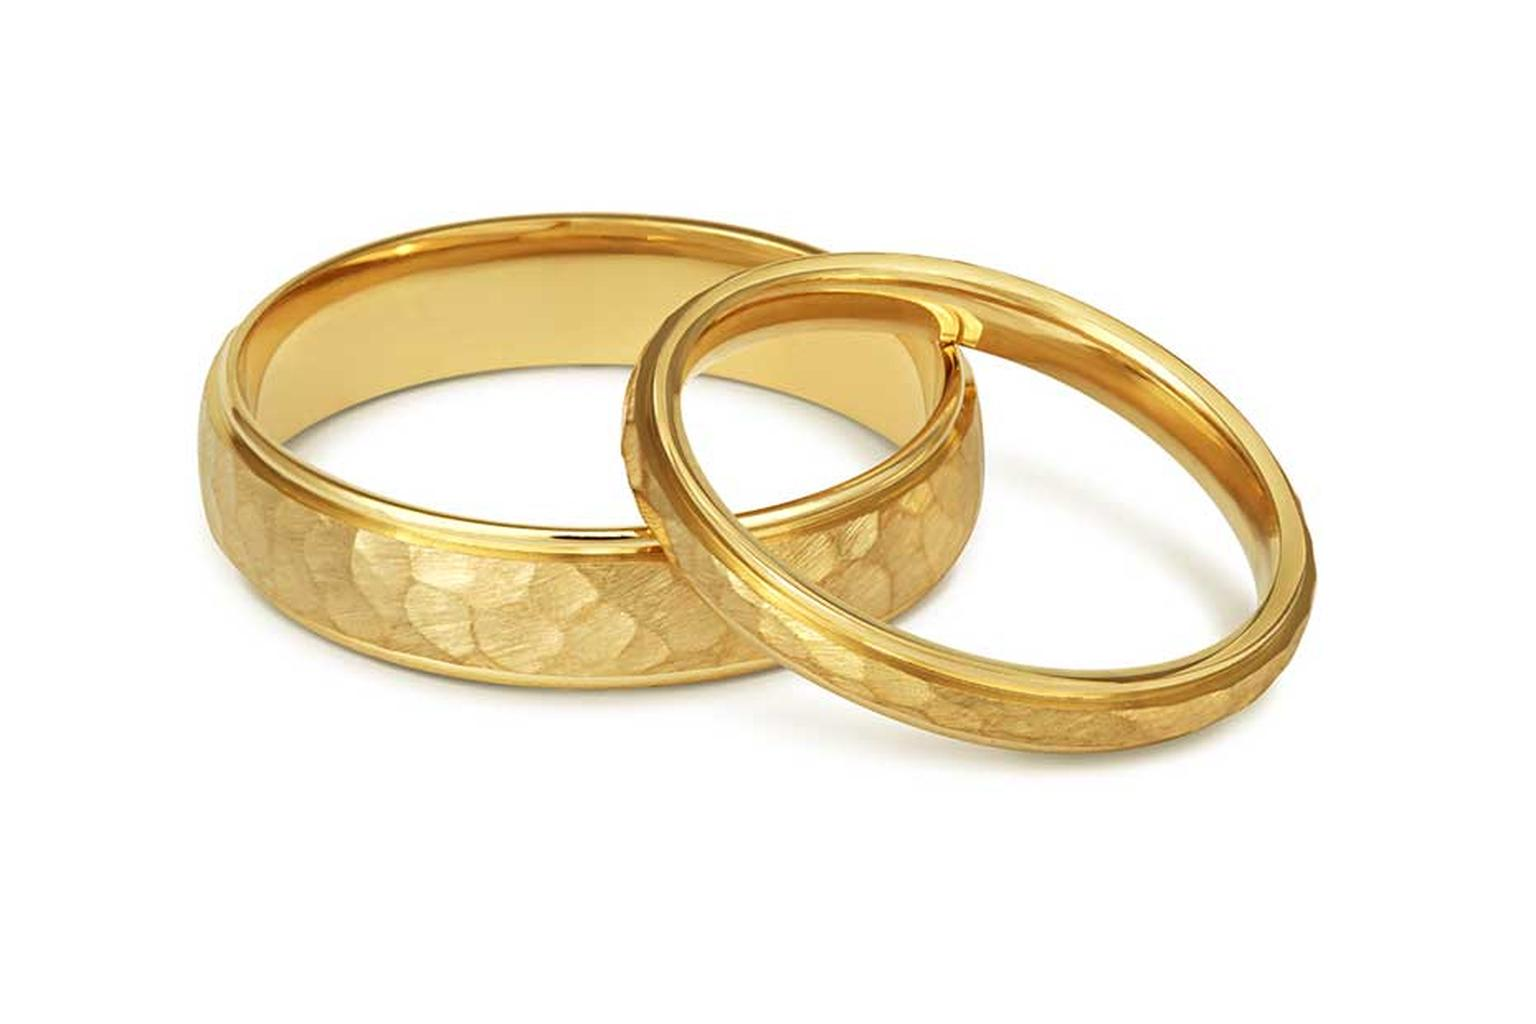 Court Hammered Wedding Rings For Him And Her In Fairtrade Yellow Gold From Cred Jewellery